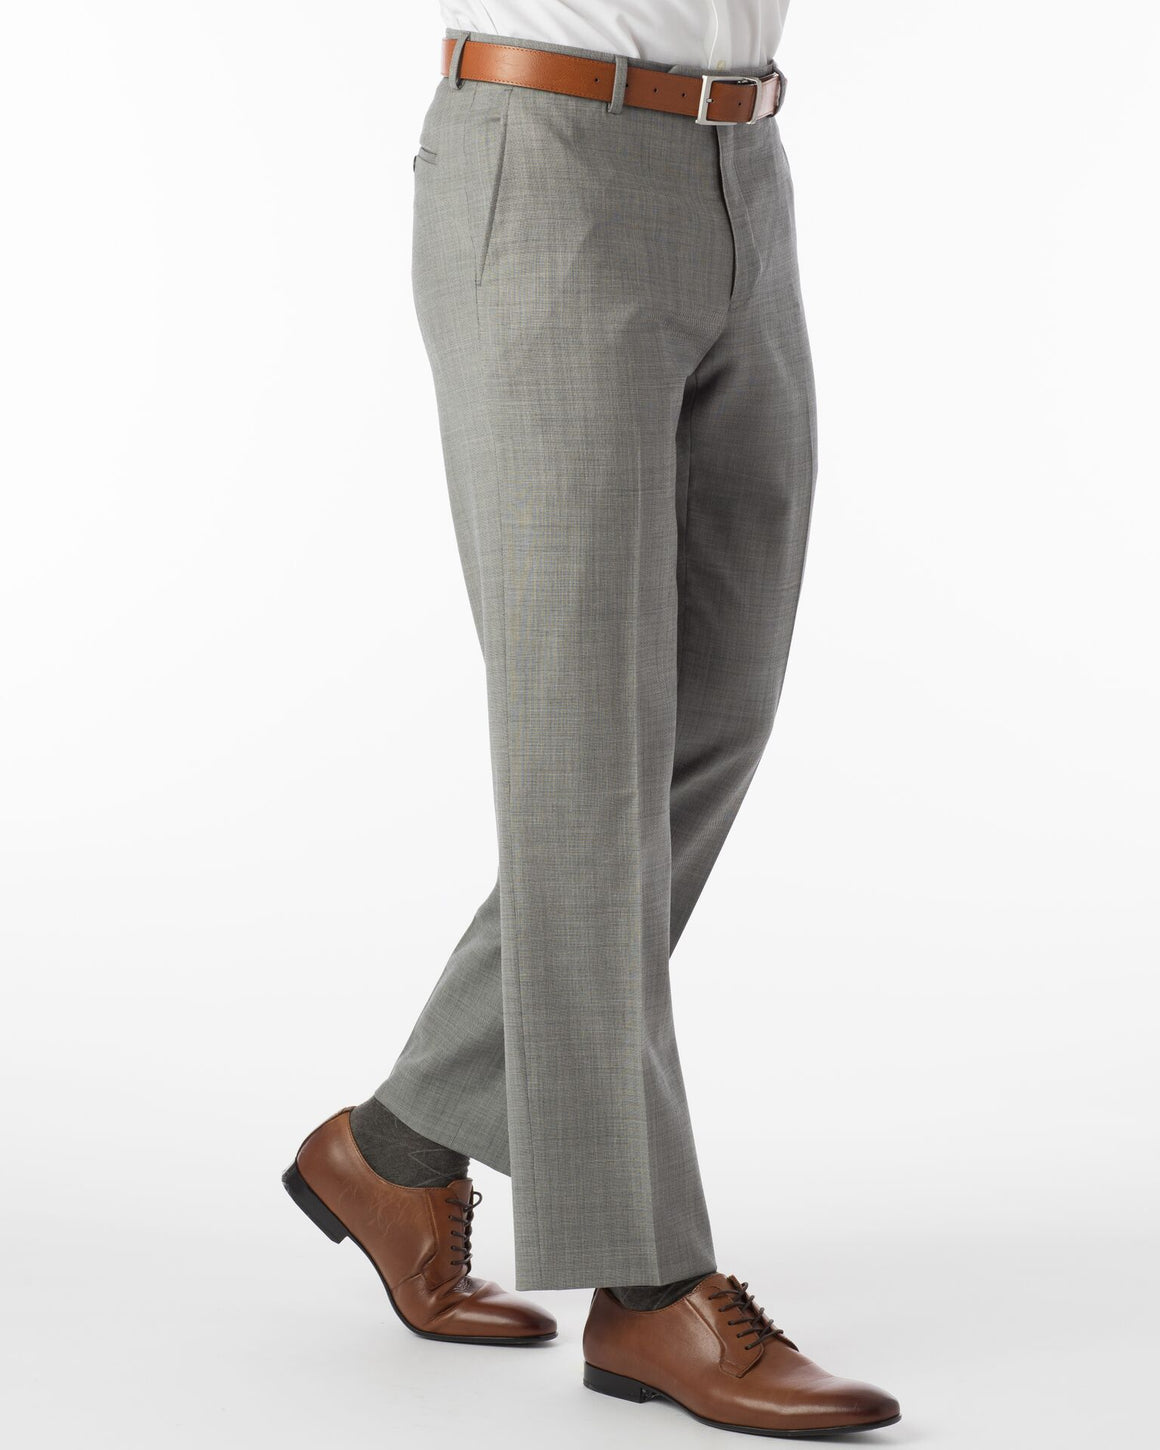 Ballin Super 110's Comfort-Eze Sharkskin Soho Dress Pant | Black and White